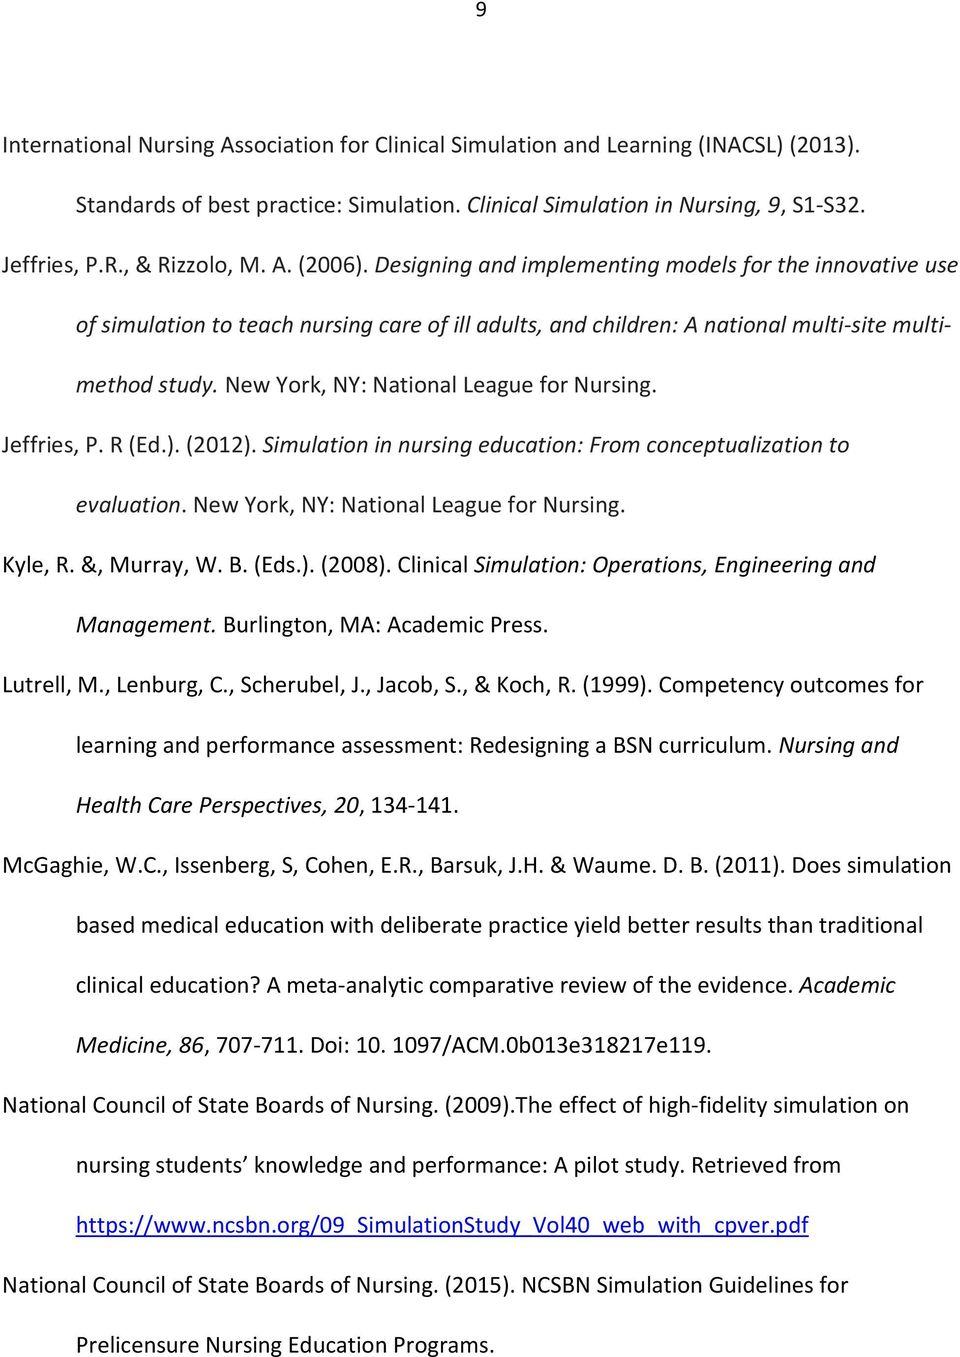 New York, NY: National League for Nursing. Jeffries, P. R (Ed.).(2012). Simulation in nursing education: From conceptualization to evaluation. New York, NY: National League for Nursing. Kyle, R.